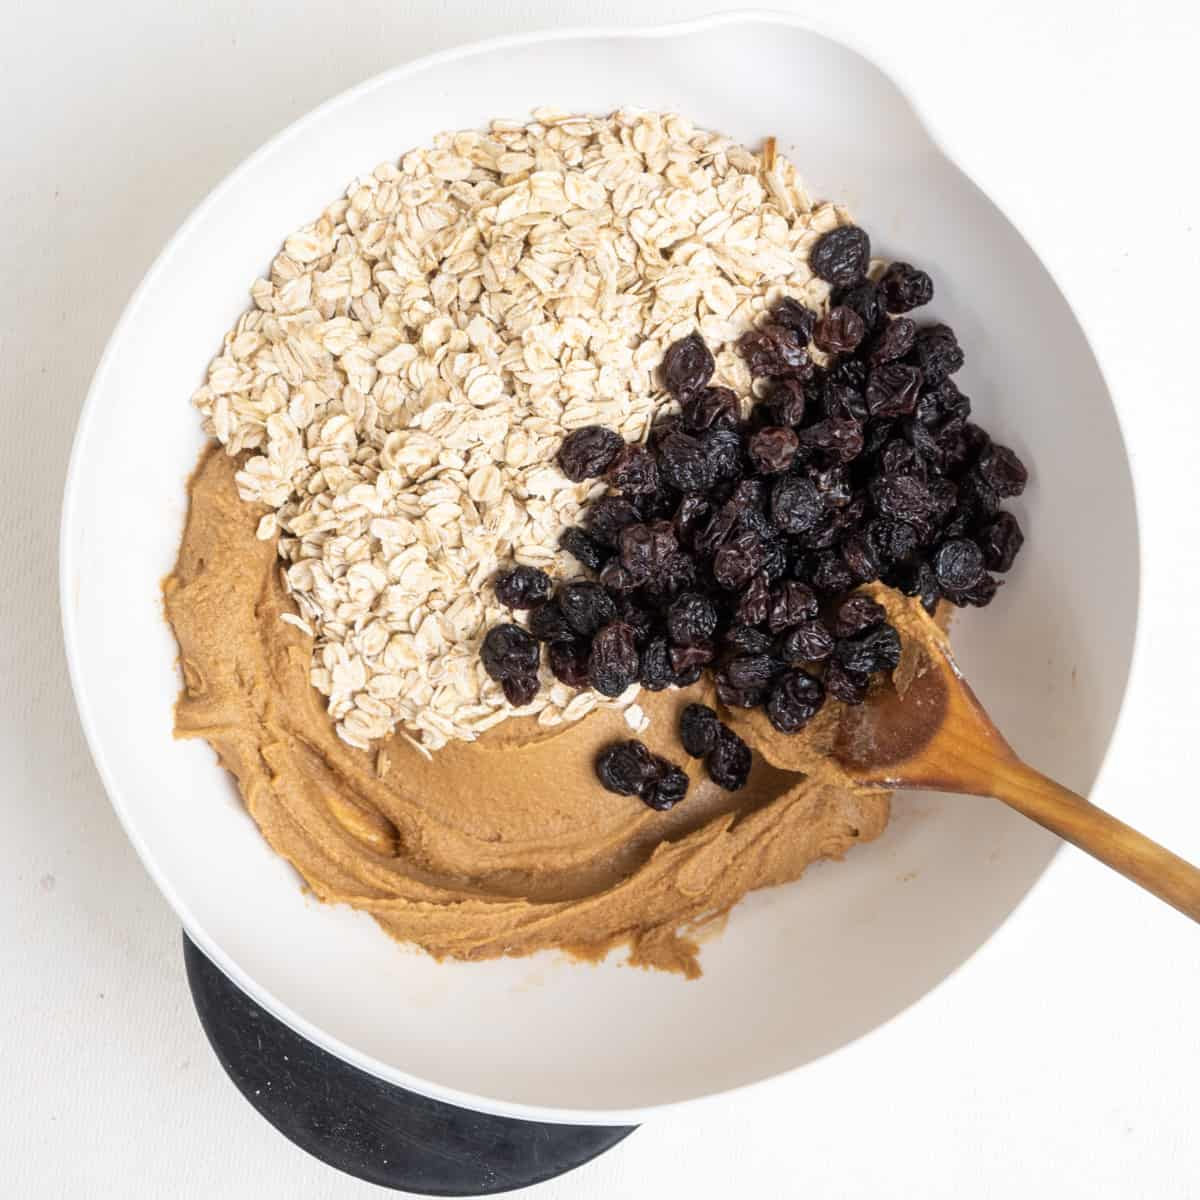 Oats and raisins with cookie dough in a mixing bowl.